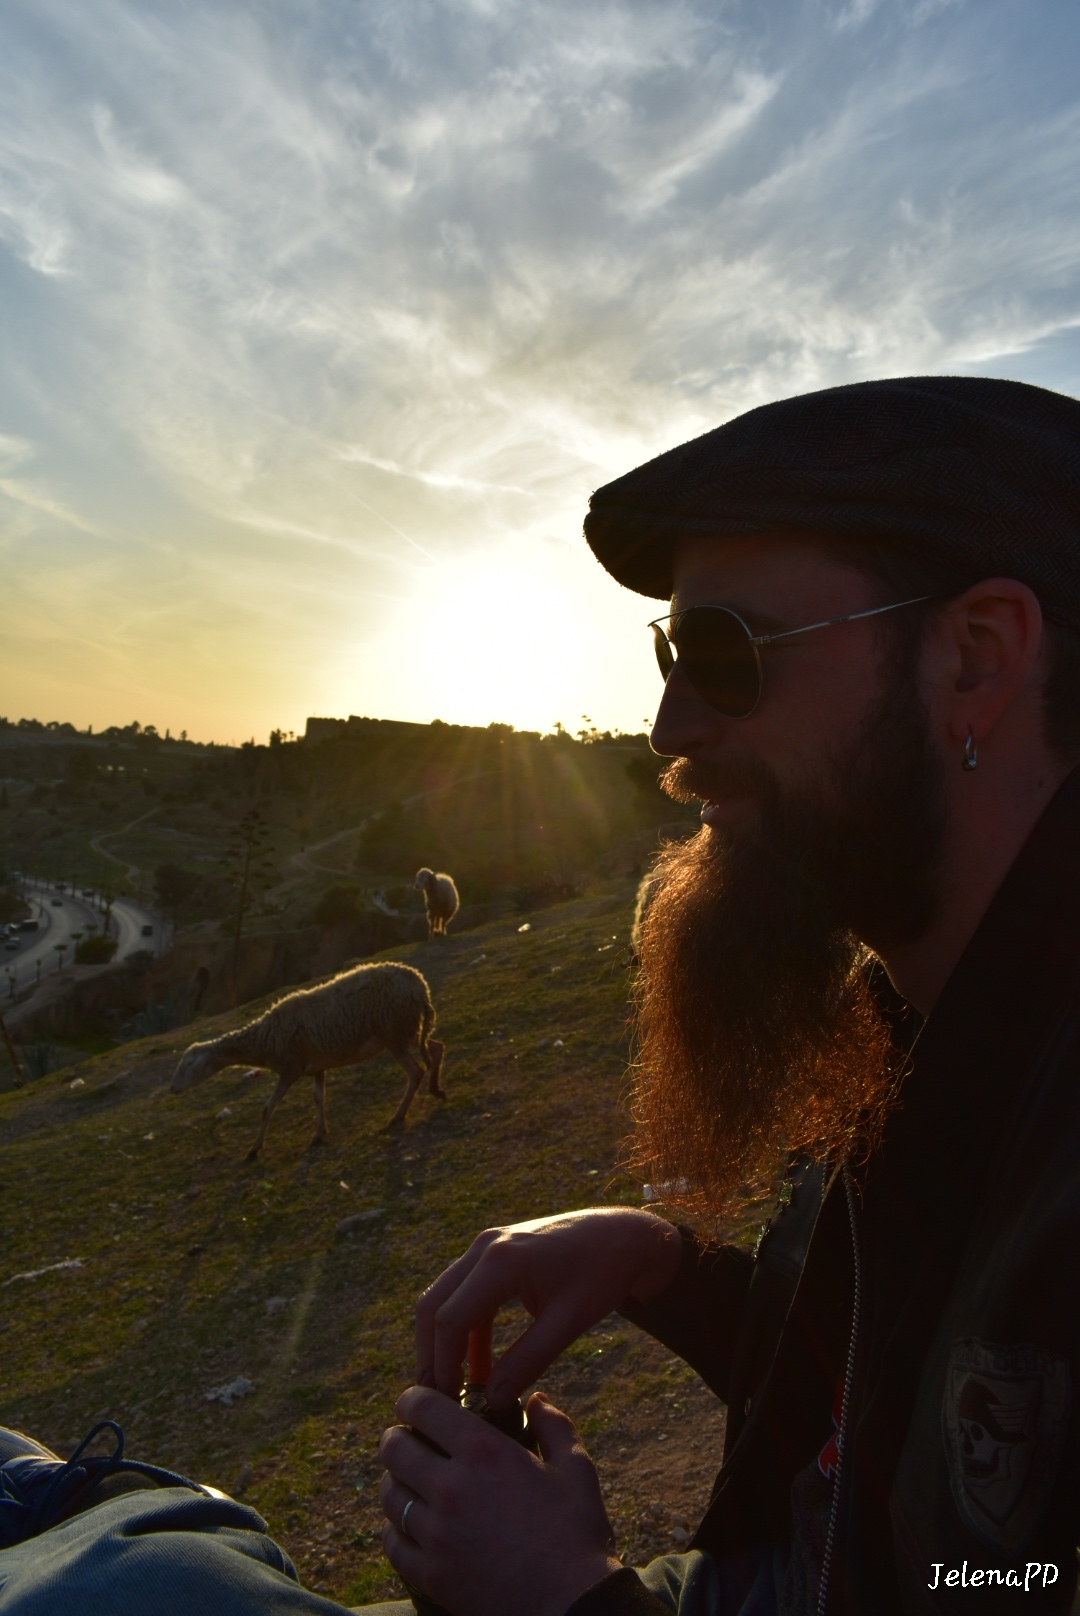 A silhouette of a man in profile. The sunlight is shining through his beard.